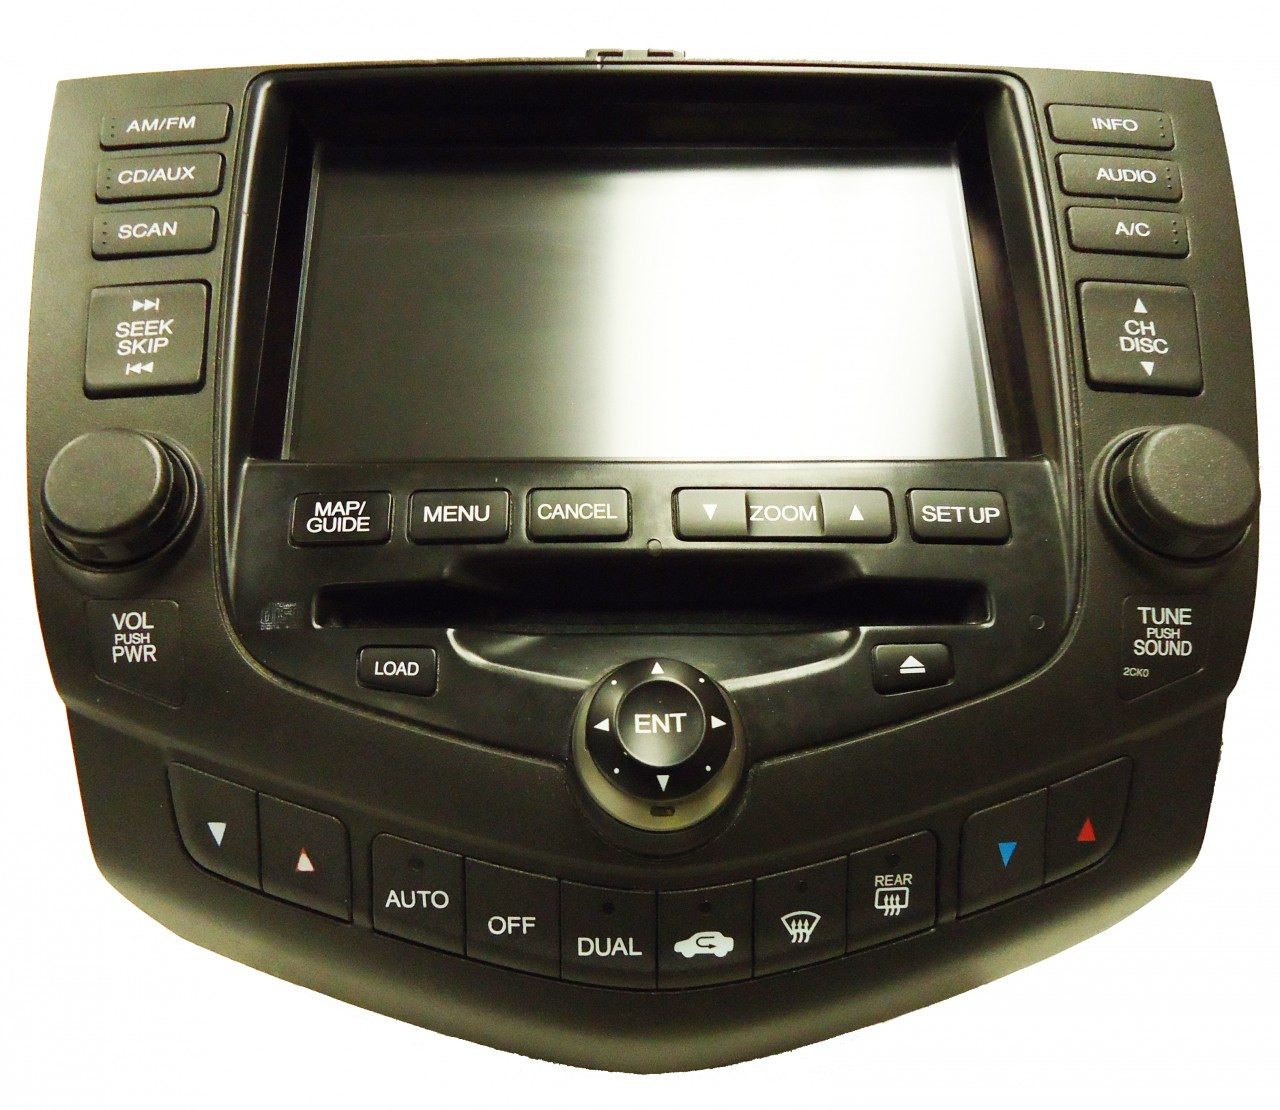 2004 honda accord radio display not working. Black Bedroom Furniture Sets. Home Design Ideas